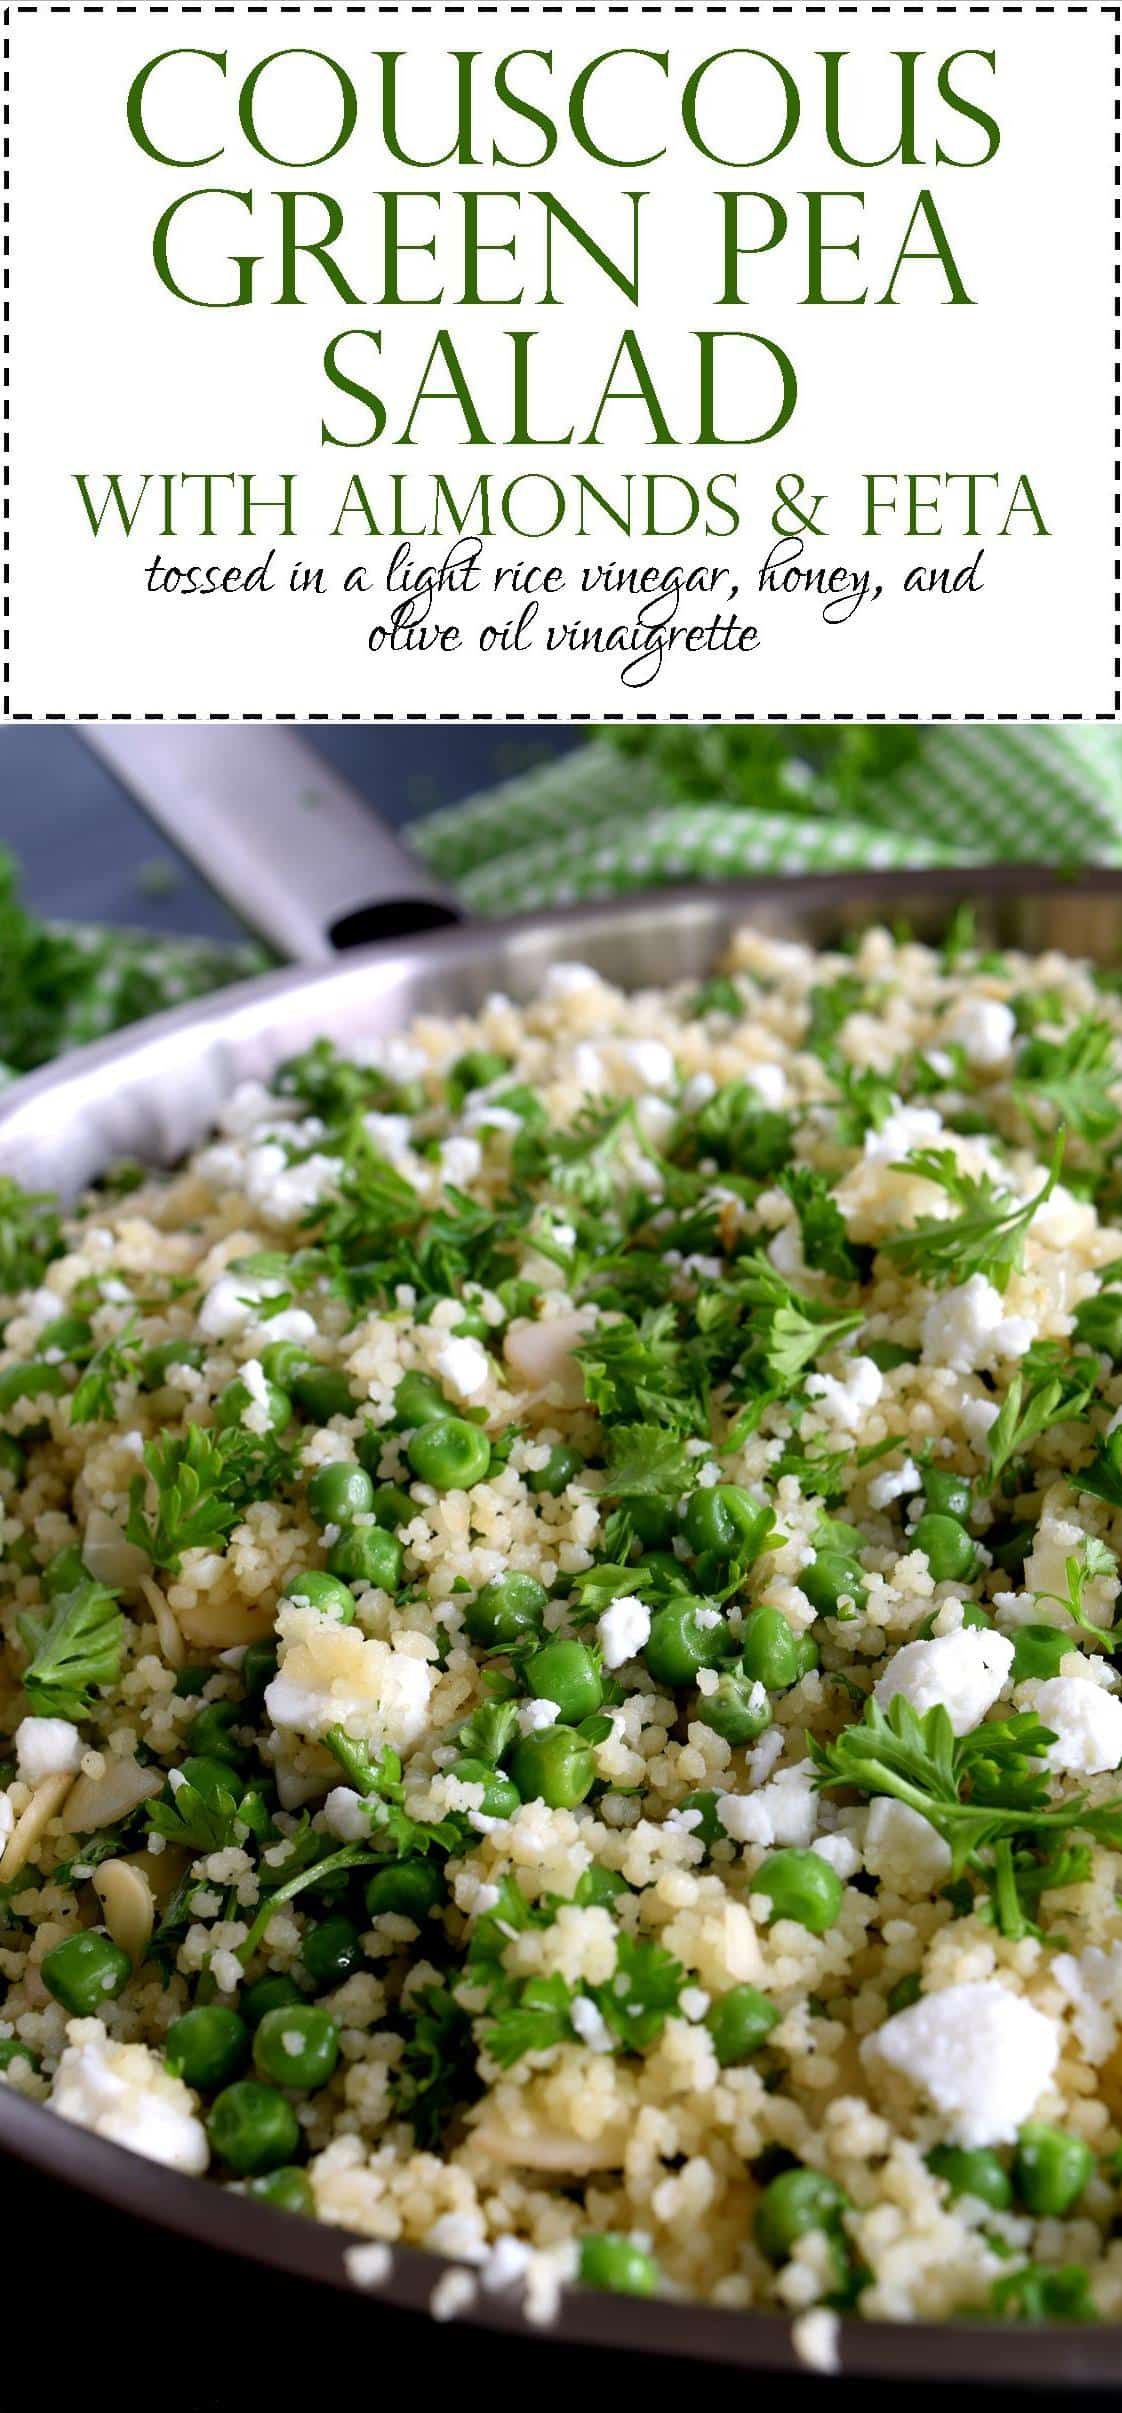 Couscous Green Pea Salad with Almonds and Feta